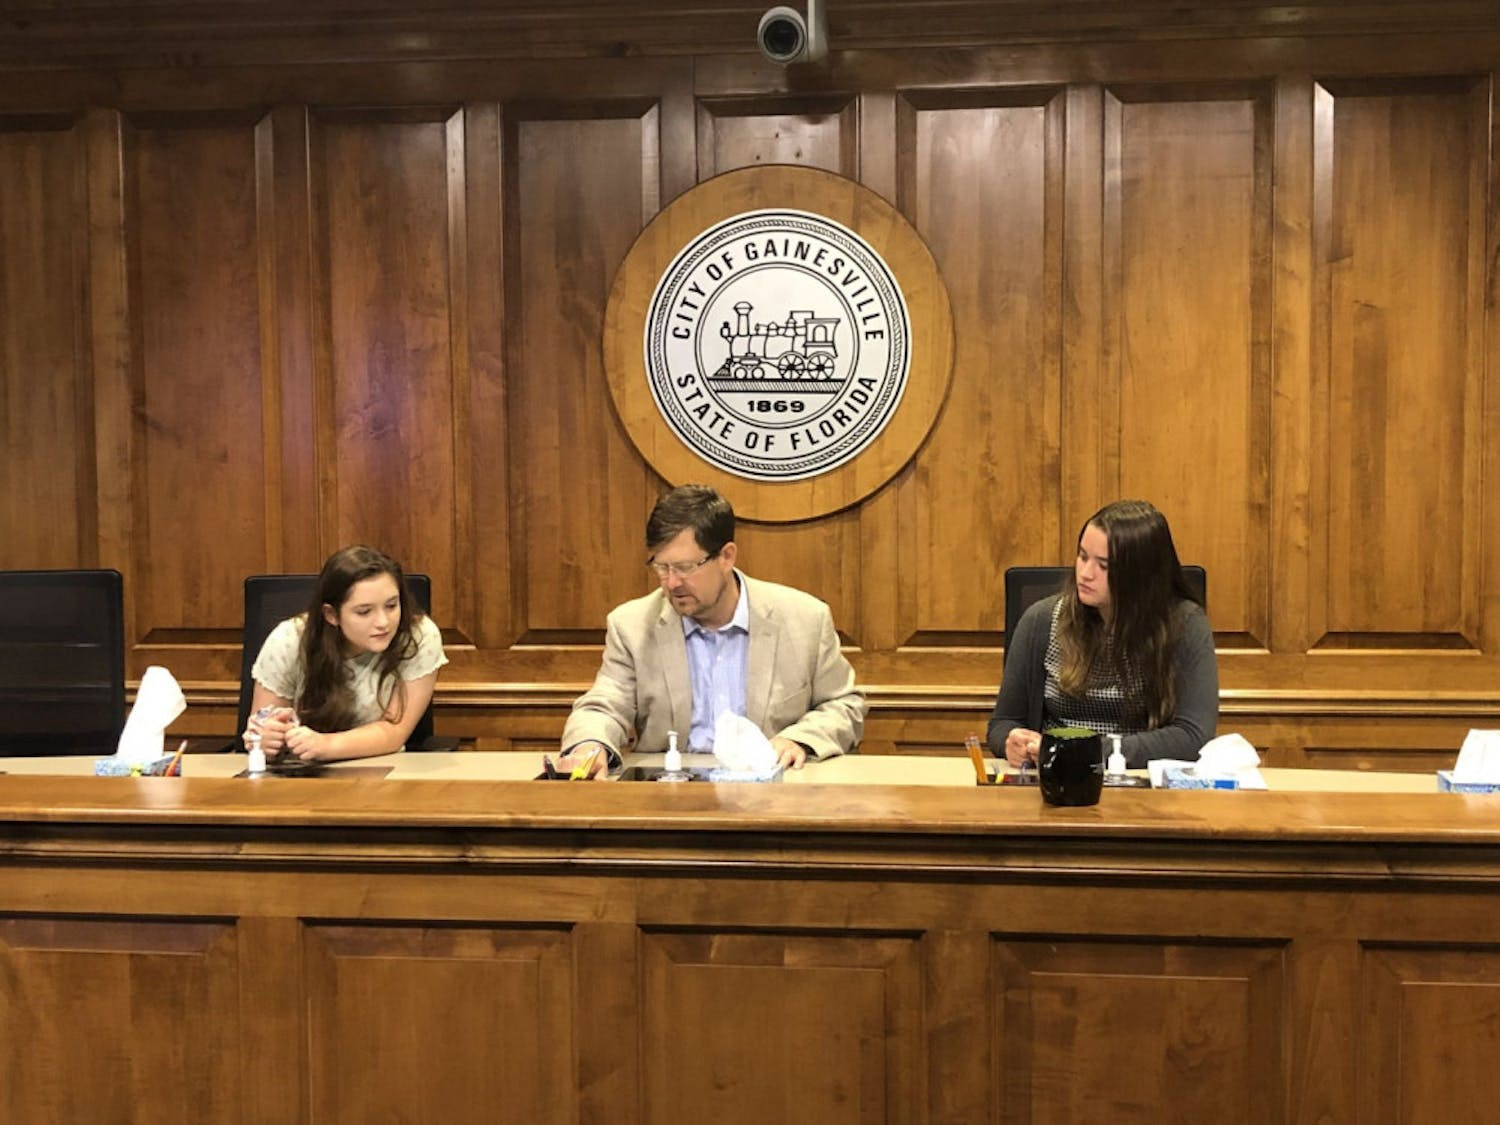 Mayor Lauren Poe (middle) allowed Keelyn Fife (left) and Alissa Humphrey (right) to sit in the city commission chairs while watching their peers' presentation.